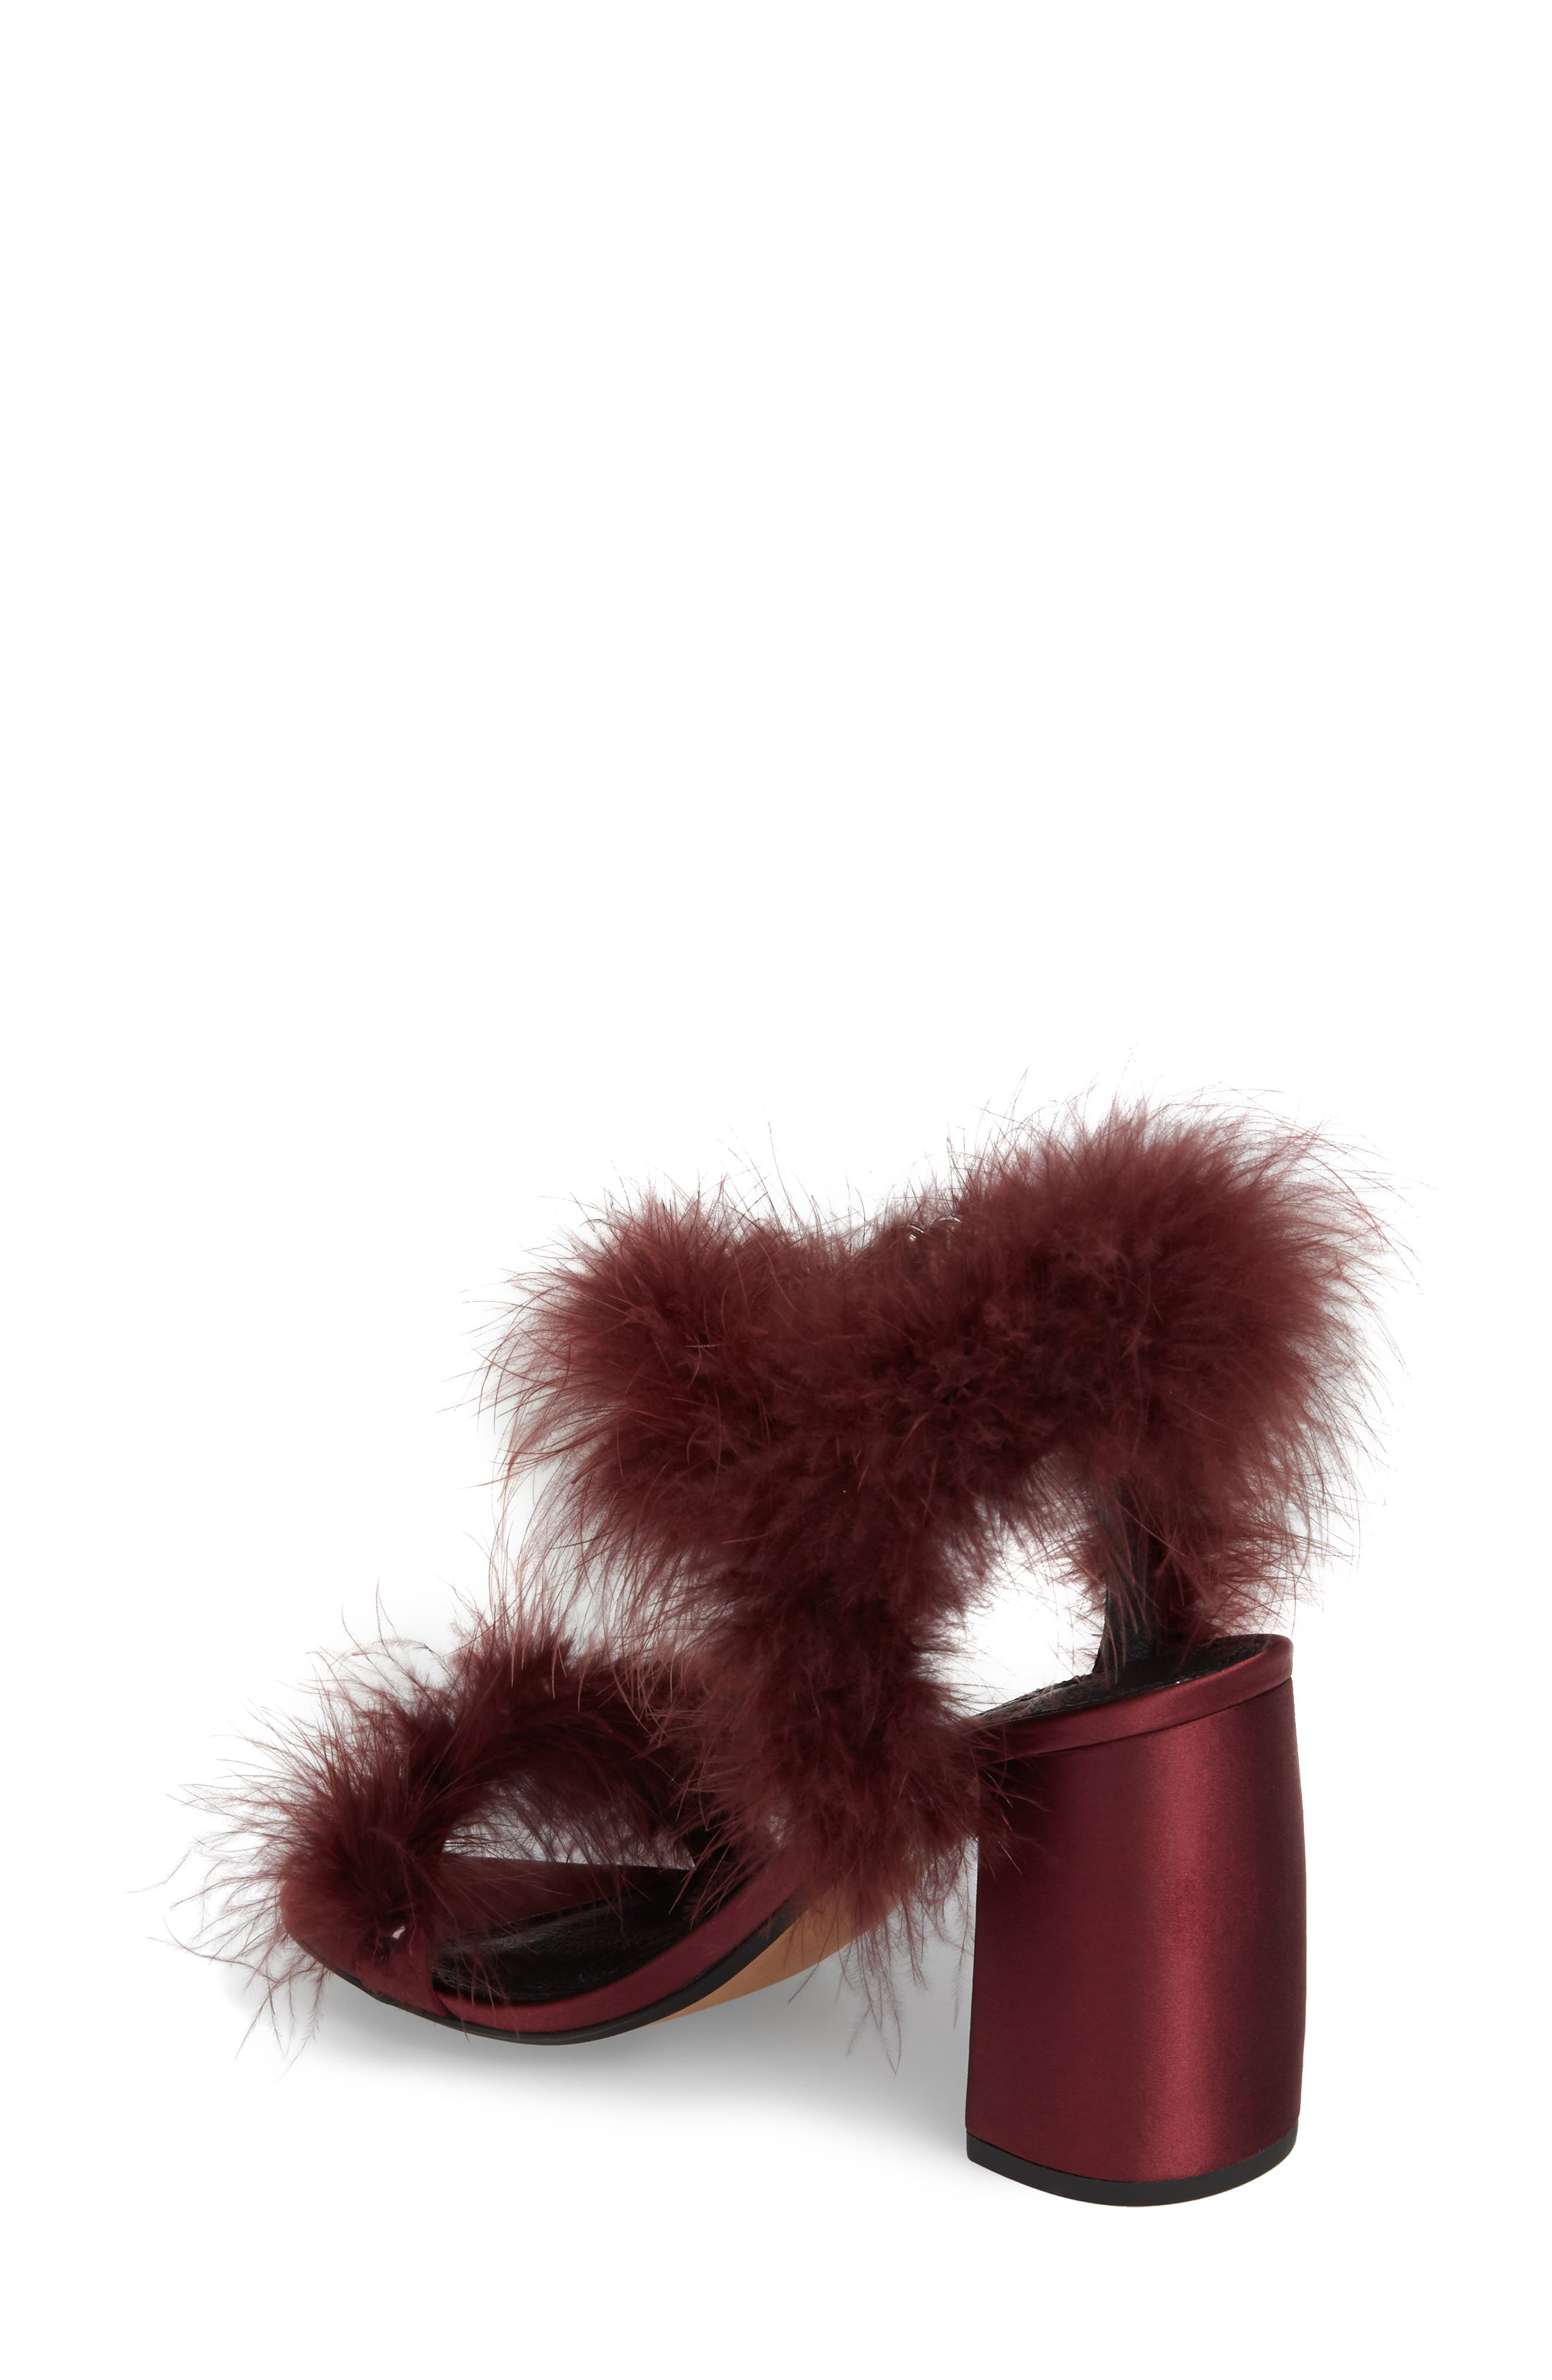 Maribou Feather Sandal,                             Alternate thumbnail 2, color,                             Burgundy